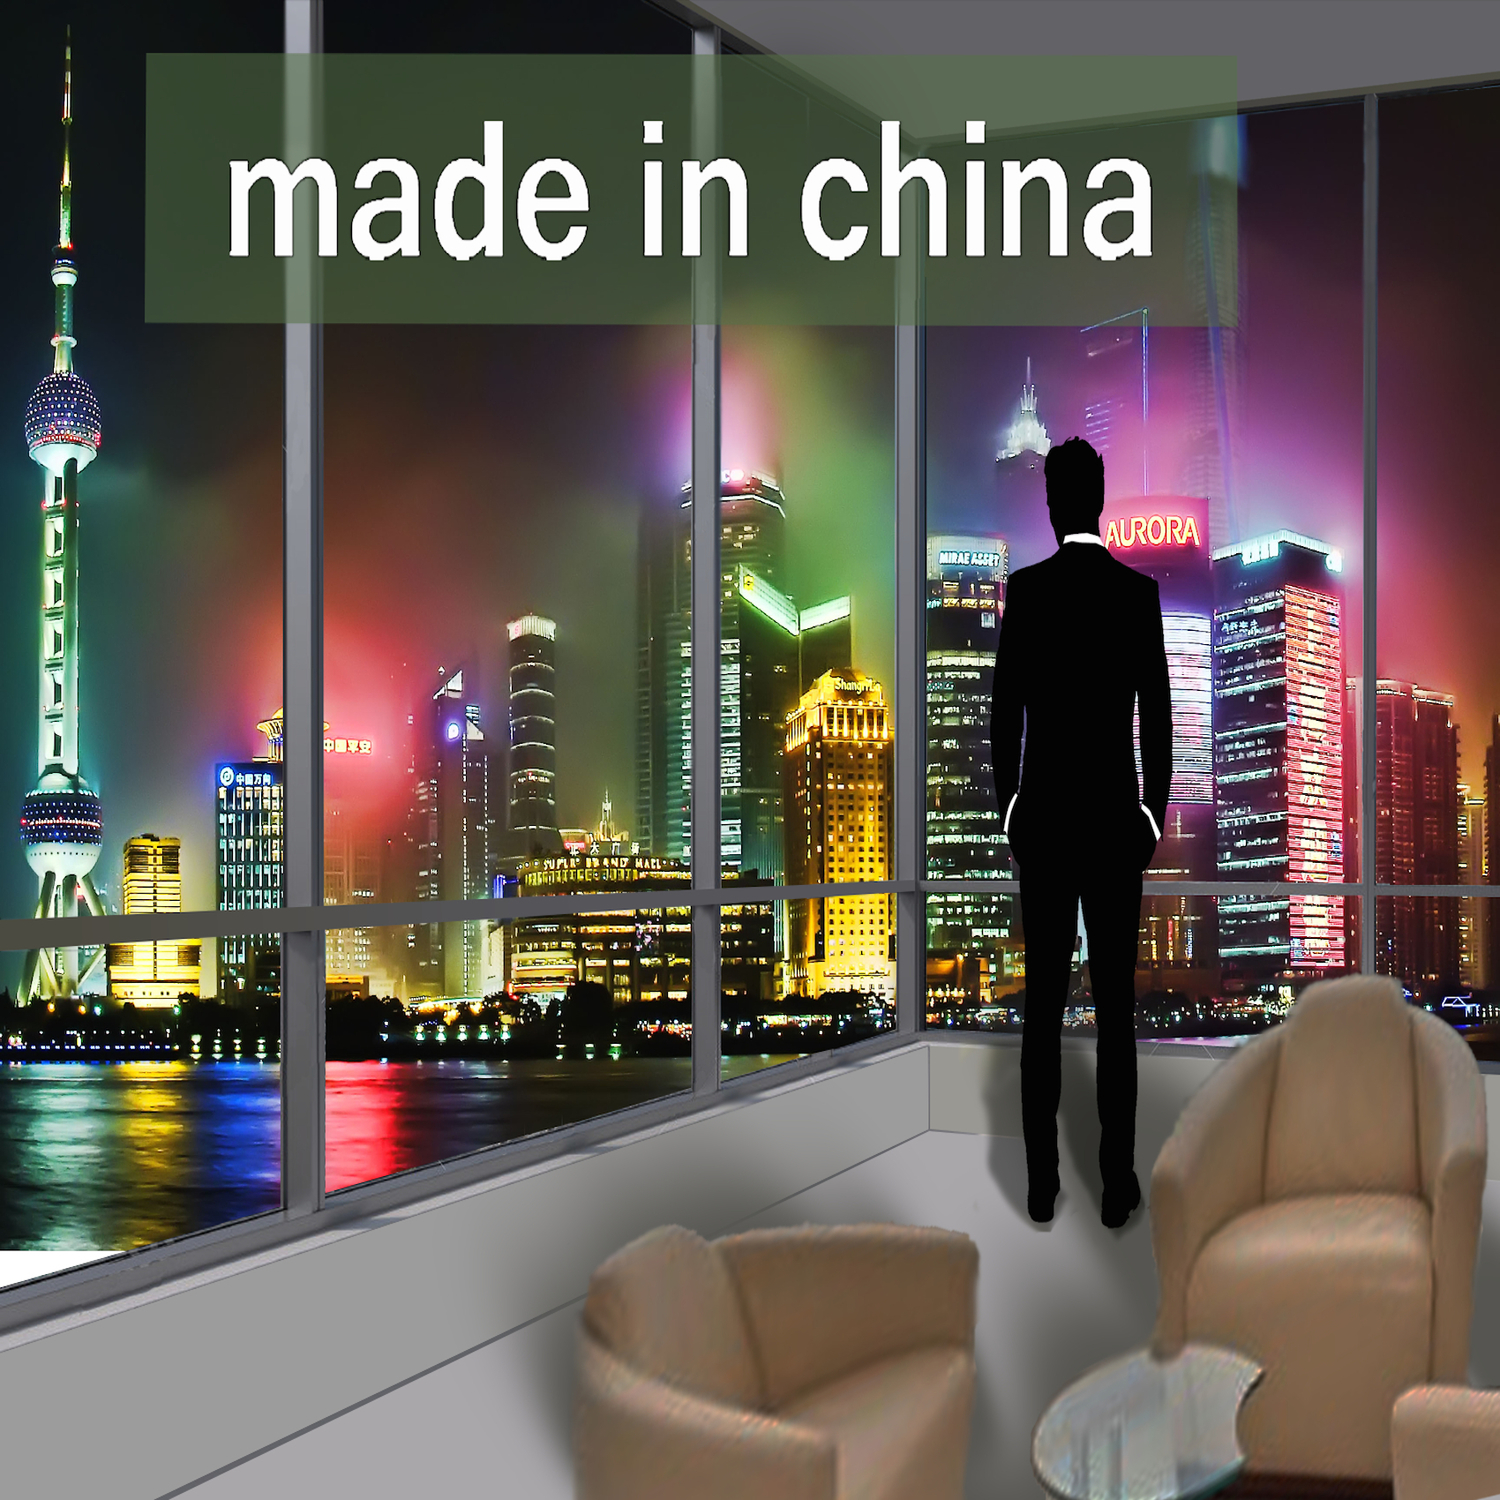 Made in China Podcast: International Business | Crowdfunding | Entrepreneurship